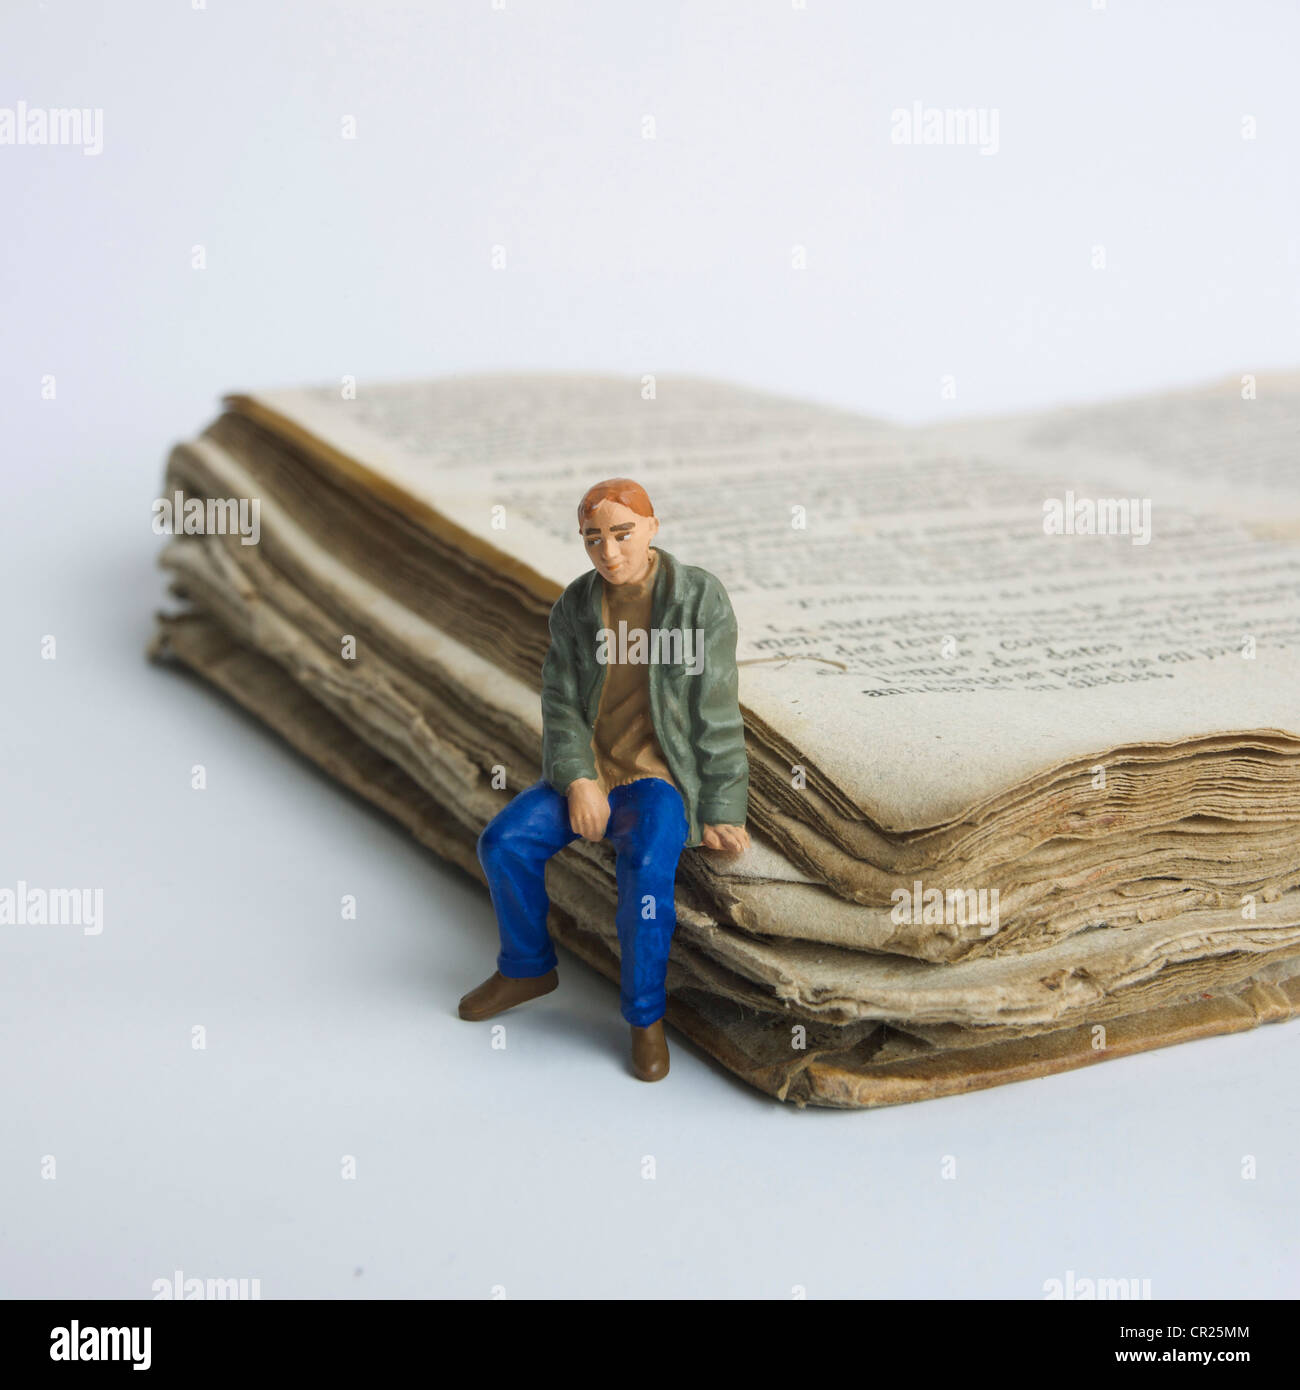 Young man / student miniature figurine, sitting on an old book - university / education / study / learning concept. - Stock Image